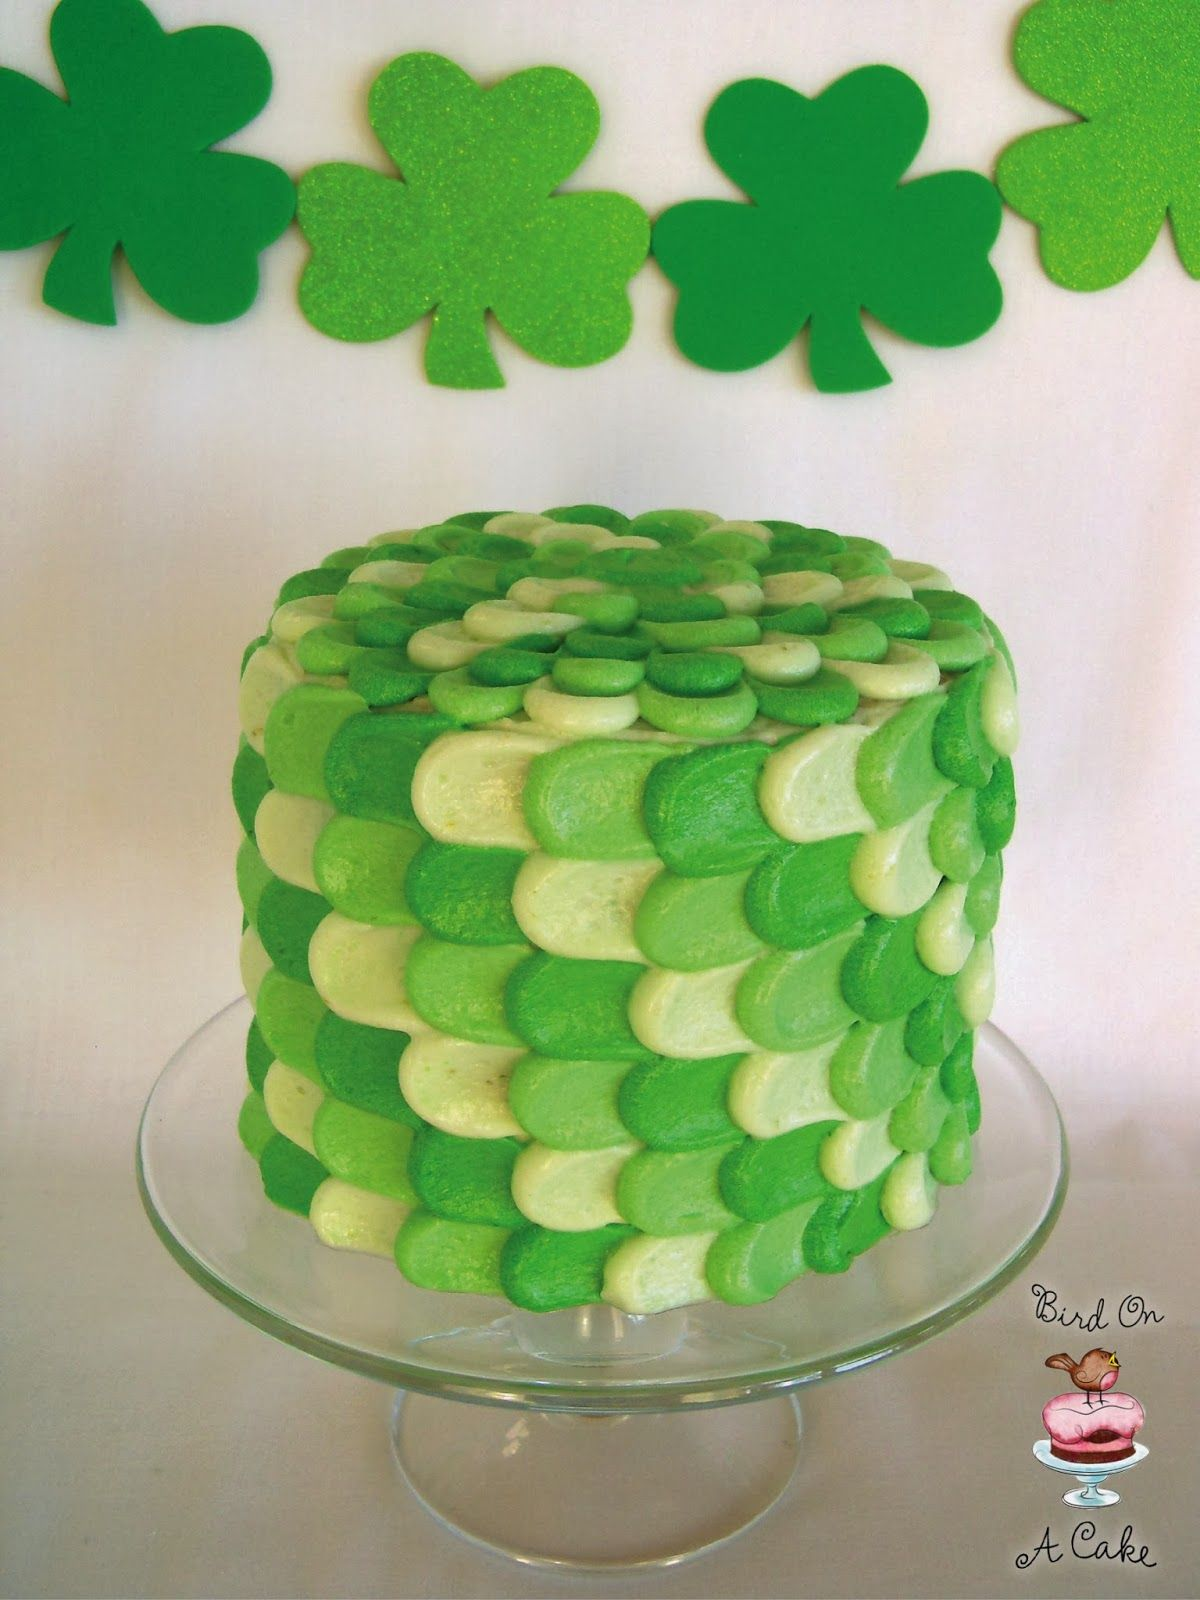 St. Patrick's Day Green Petal Cake - To view our full range of St Patrick's Day cake decorating supplies, please visit http://www.craftcompany.co.uk/occasions/saint-days.html